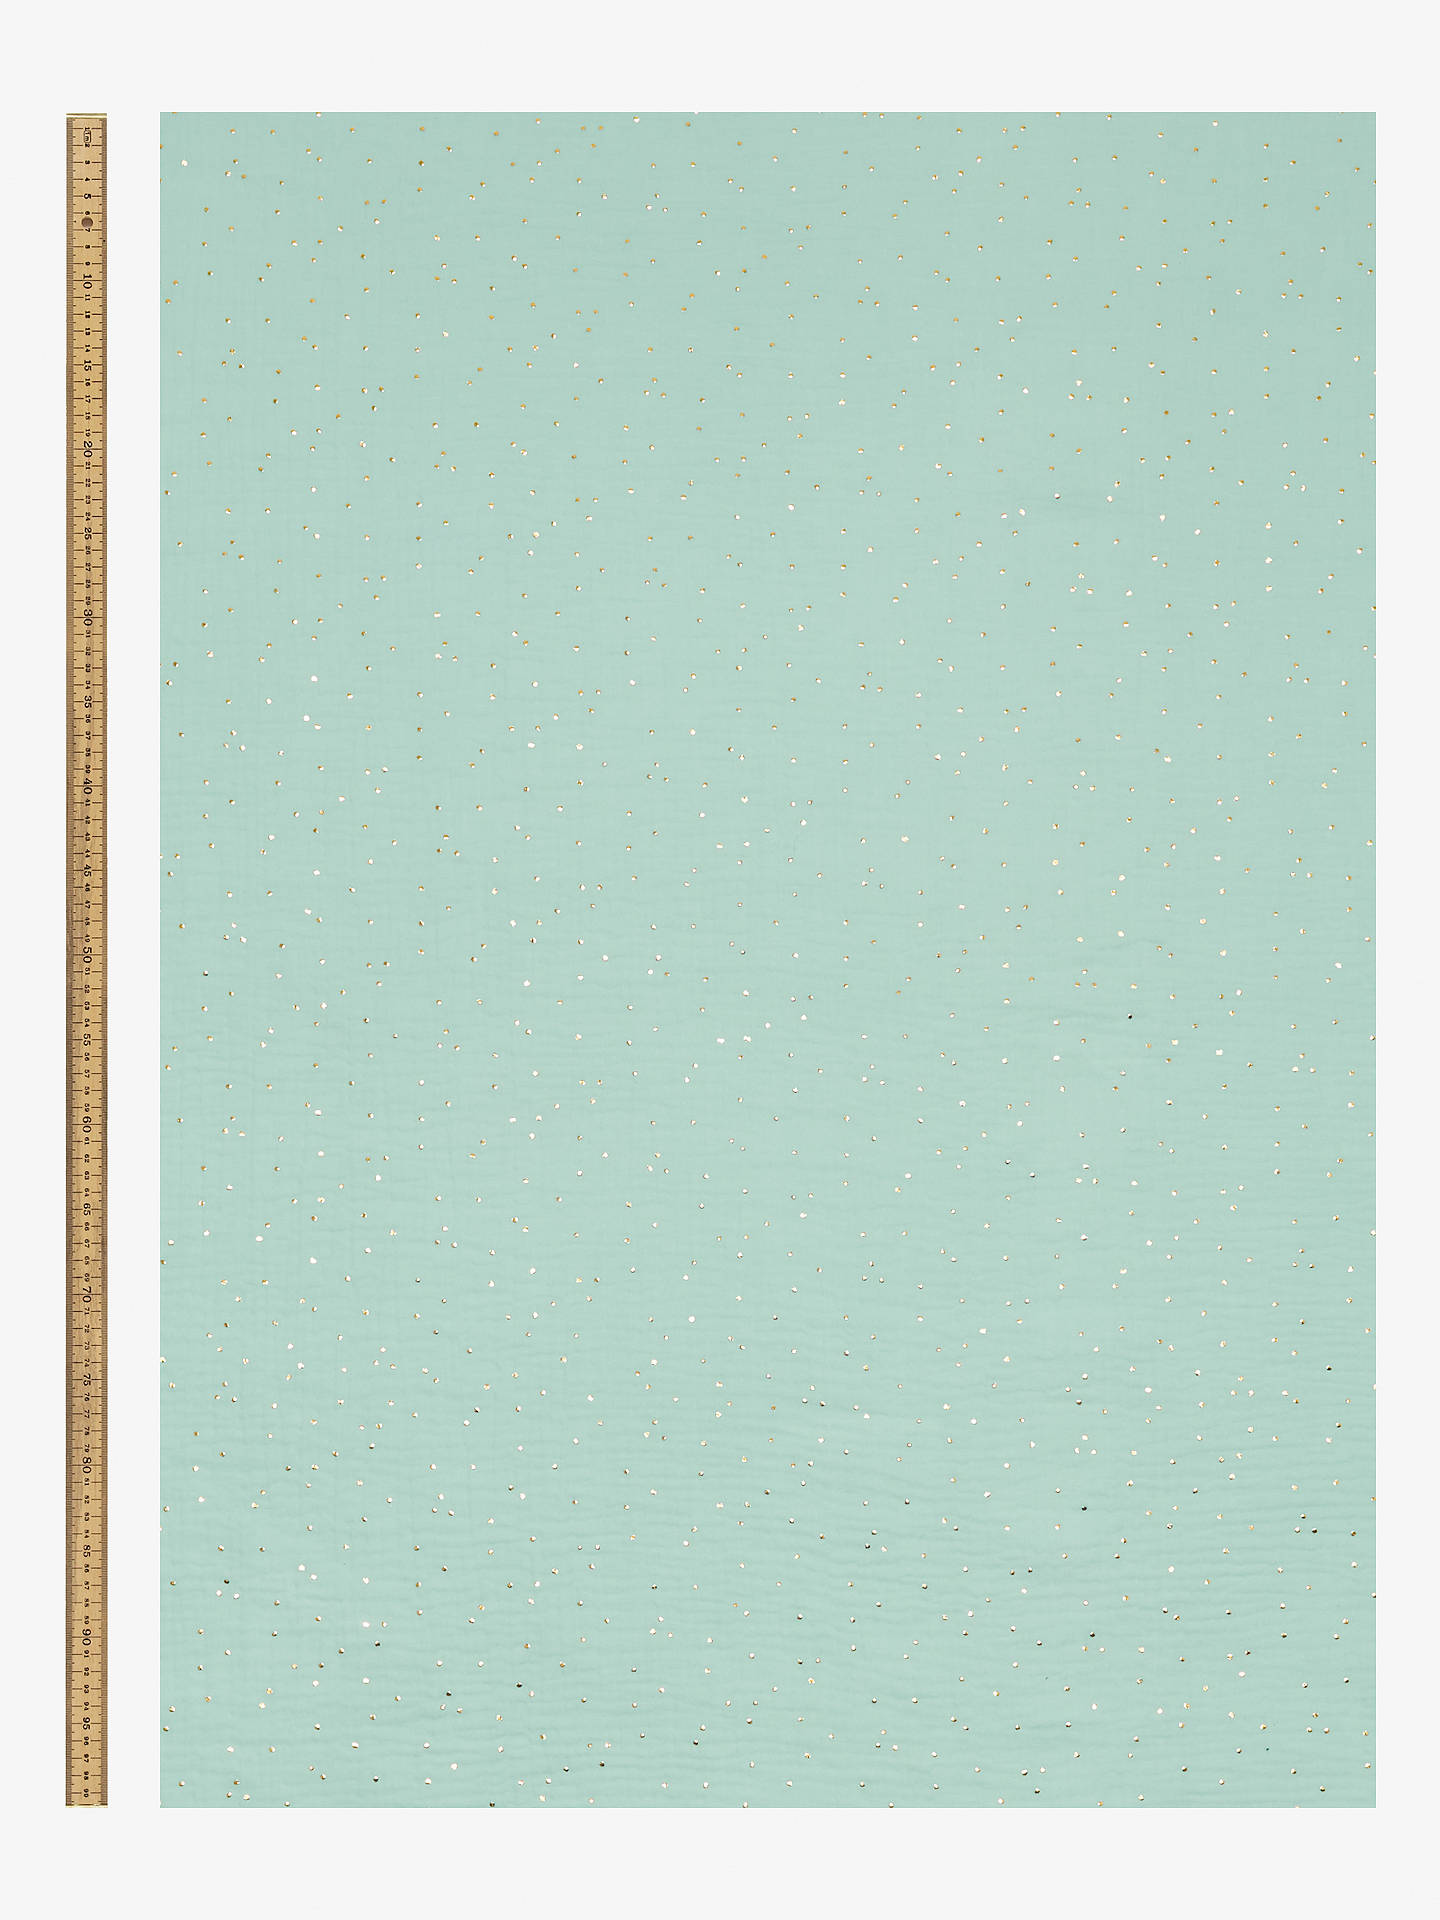 Buy Domotex Muslin With Gold Spots Print Fabric, Green Online at johnlewis.com